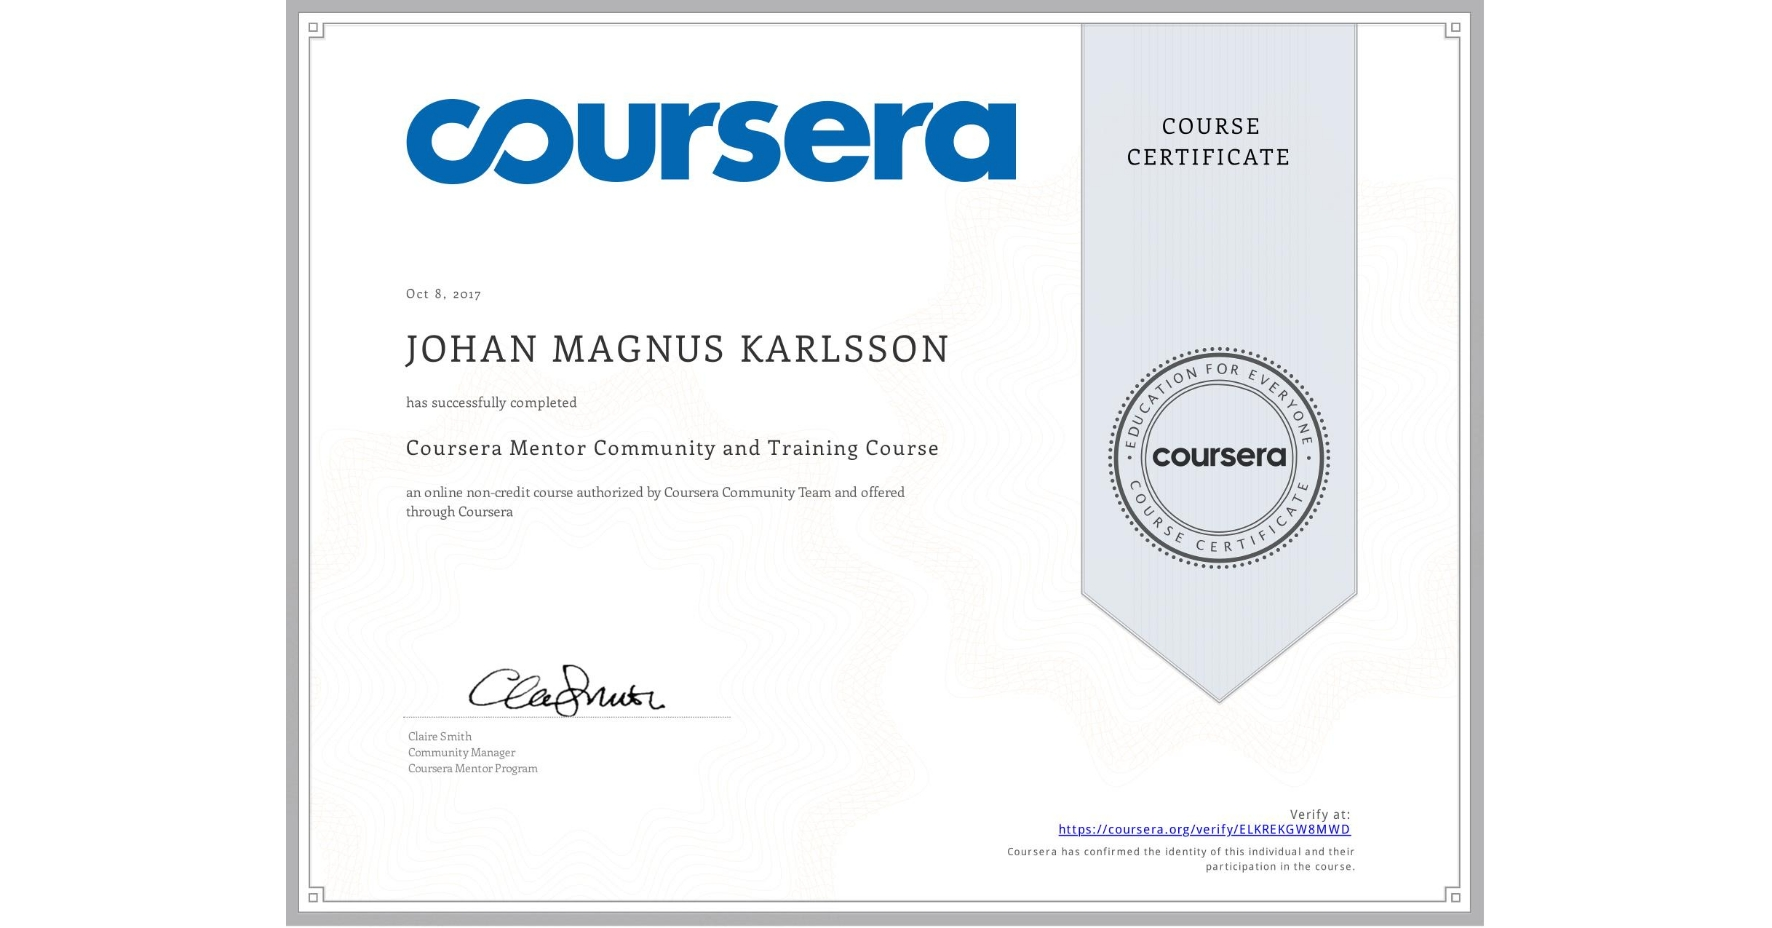 View certificate for JOHAN MAGNUS  KARLSSON, Coursera Mentor Community and Training Course, an online non-credit course authorized by Coursera Community Team and offered through Coursera